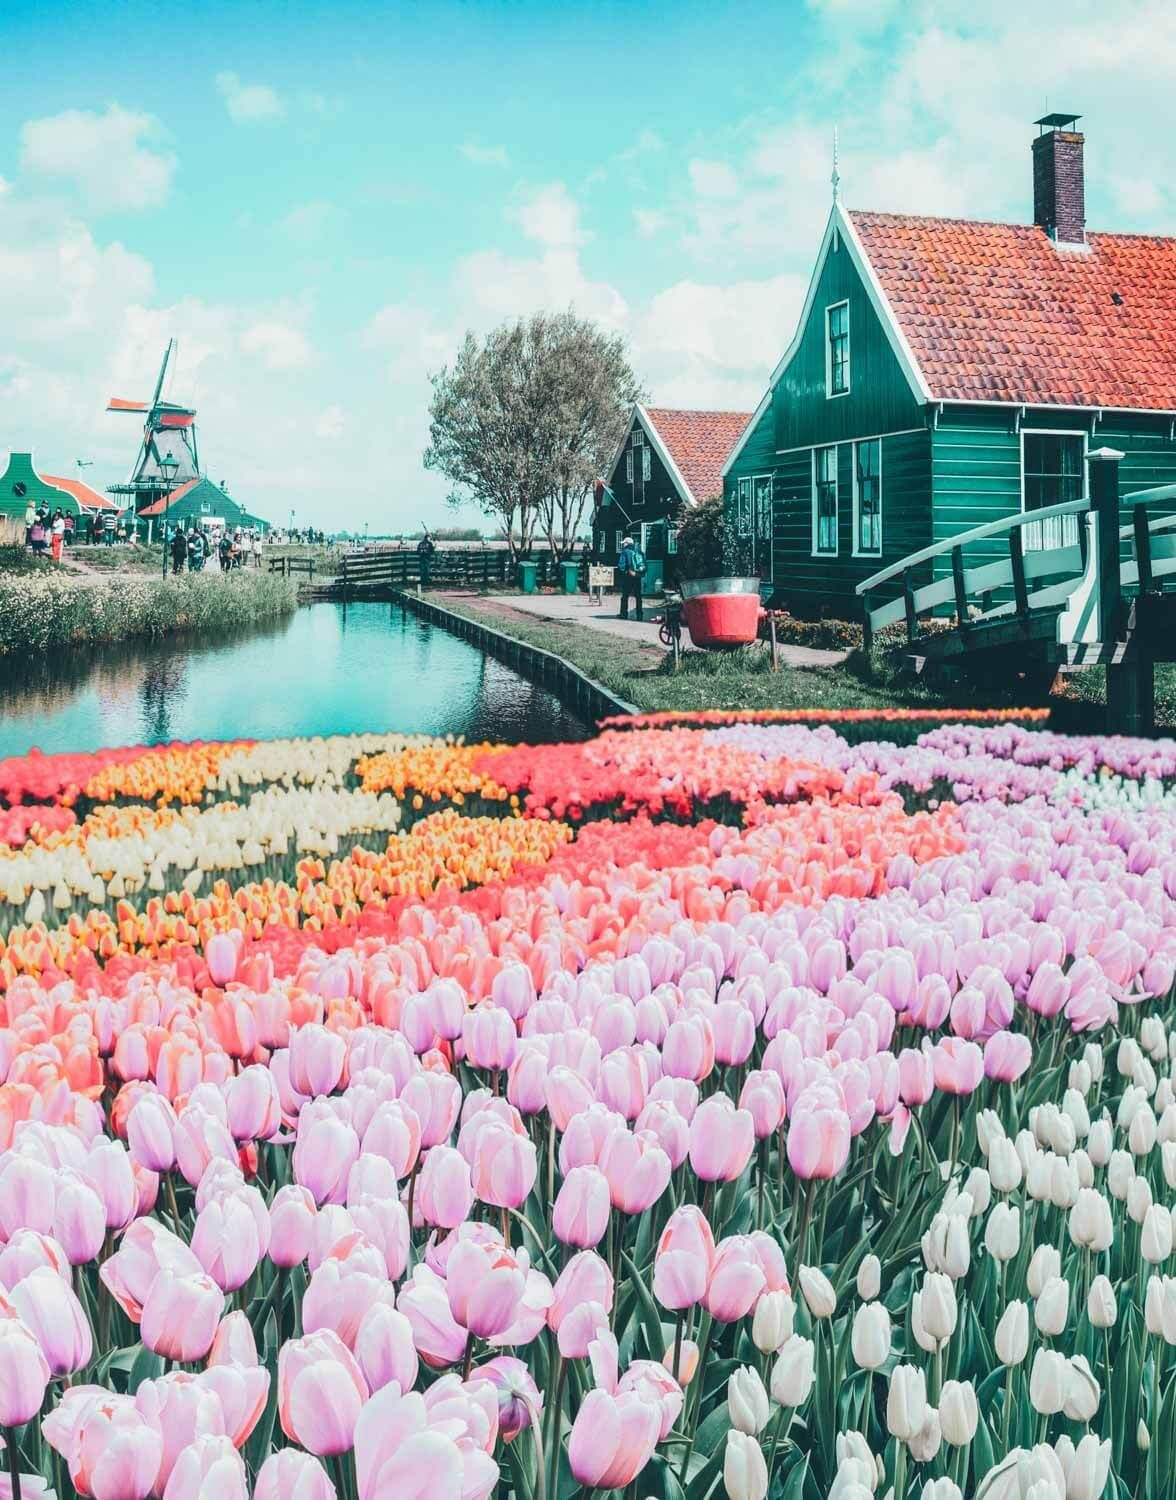 Top Things to do in the Netherlands #vacationdestinations